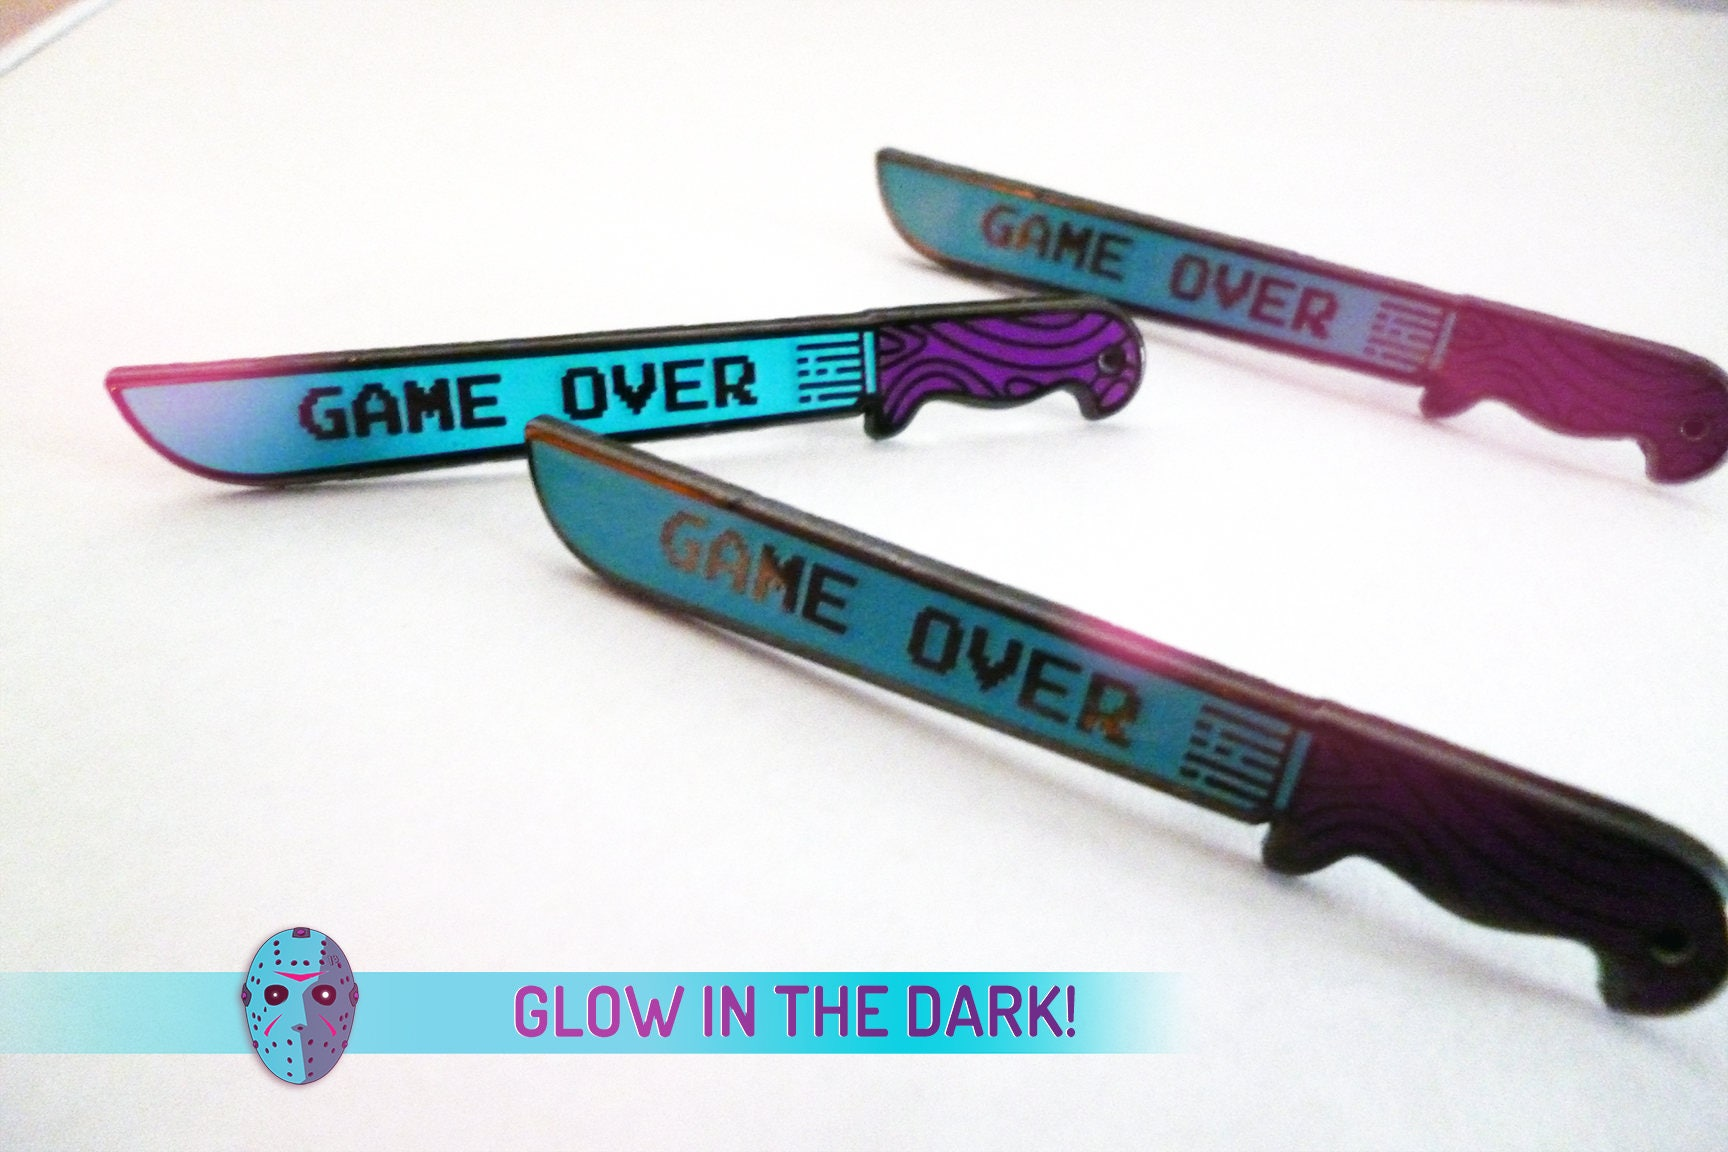 GAME OVER Friday the 13th NES 8-Bit glow in the dark / hard